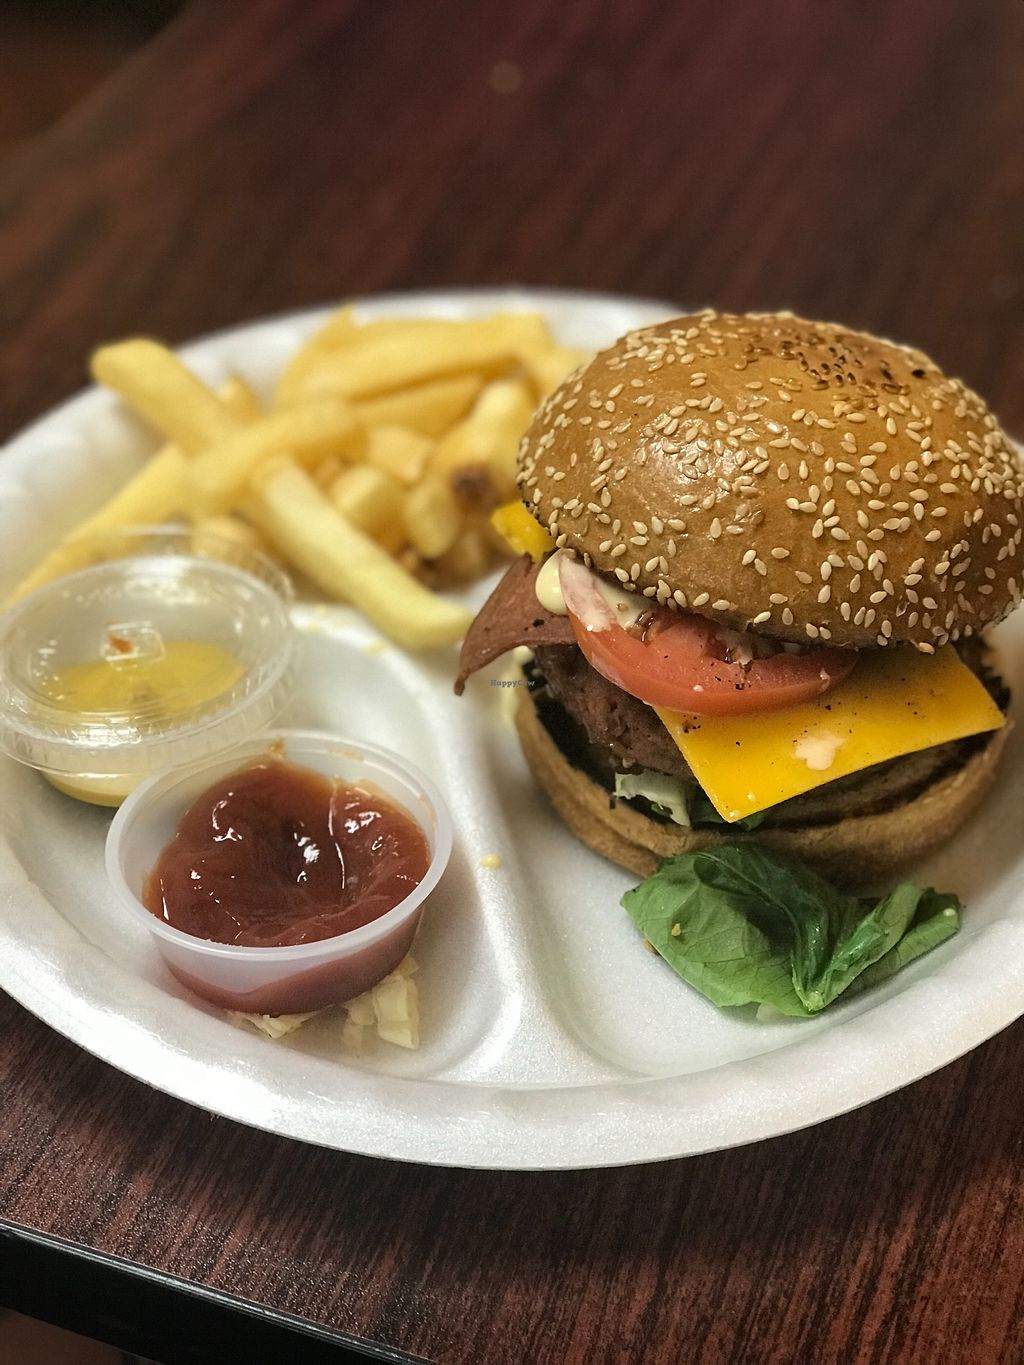 """Photo of Veganos Kitchen  by <a href=""""/members/profile/Spacetaco713"""">Spacetaco713</a> <br/>Beyond burger with bacon and cheese <br/> January 21, 2018  - <a href='/contact/abuse/image/107317/349480'>Report</a>"""